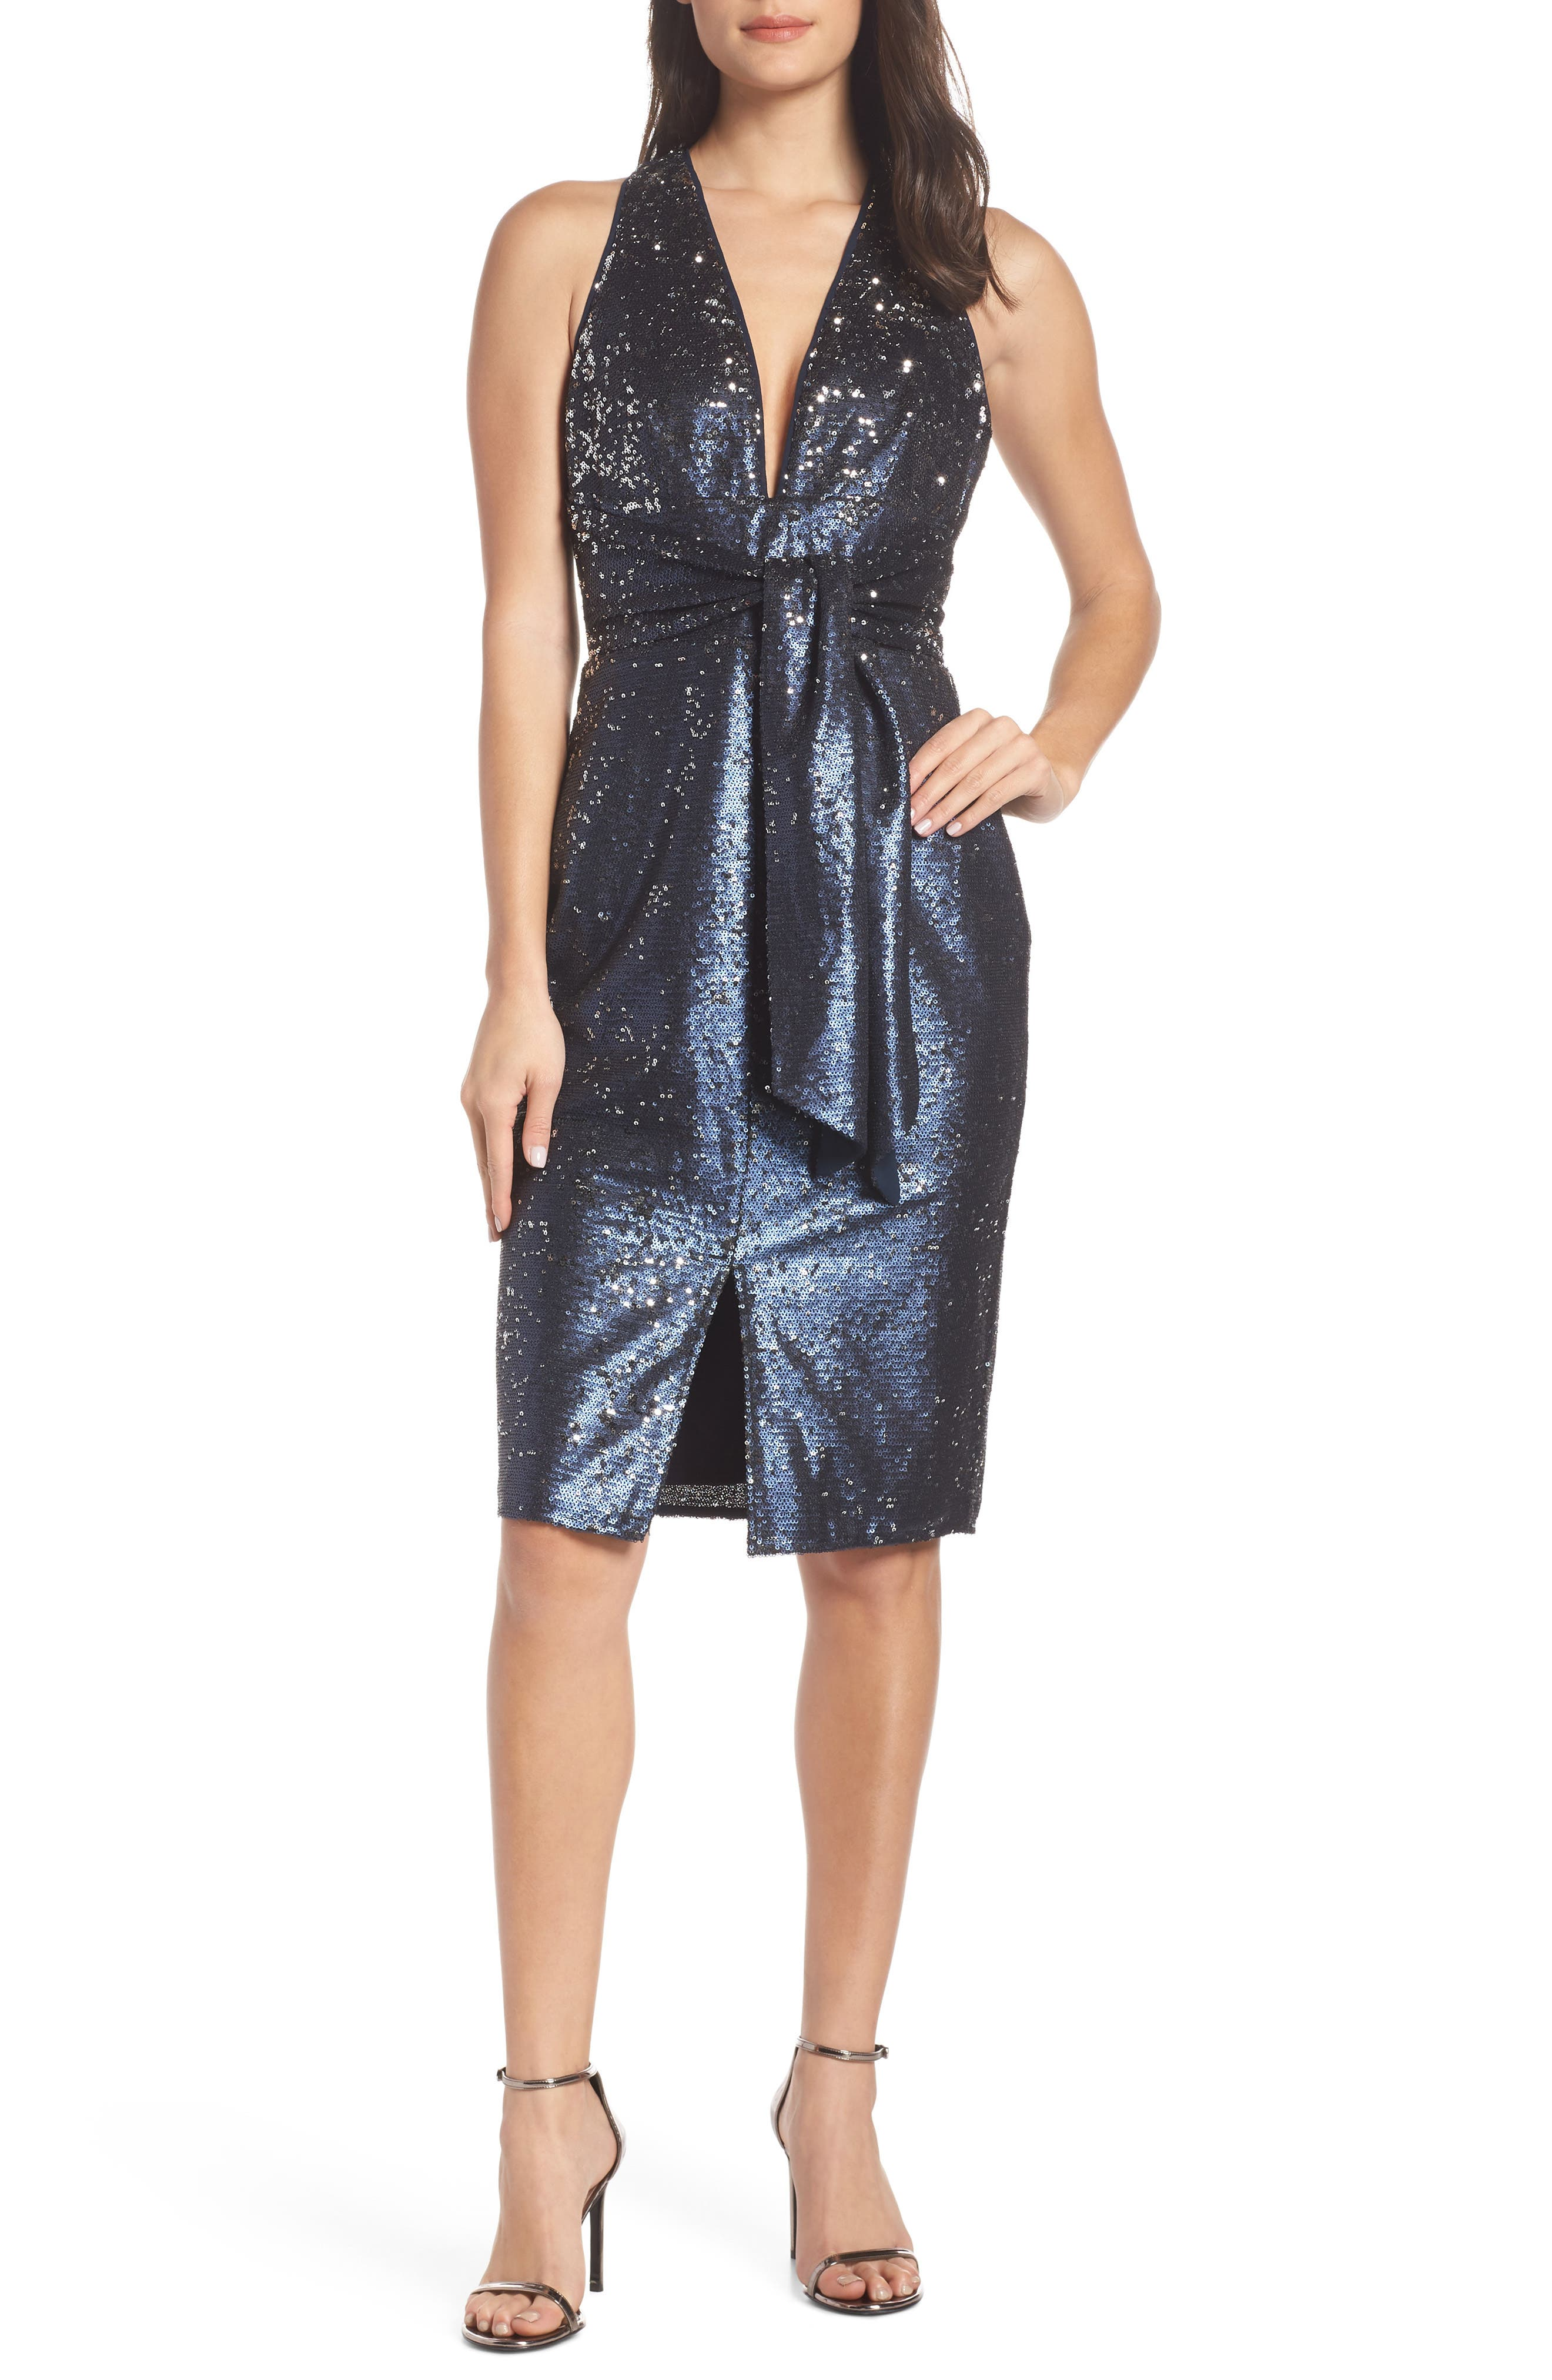 HARLYN Plunge Neck Sequin Dress in Navy